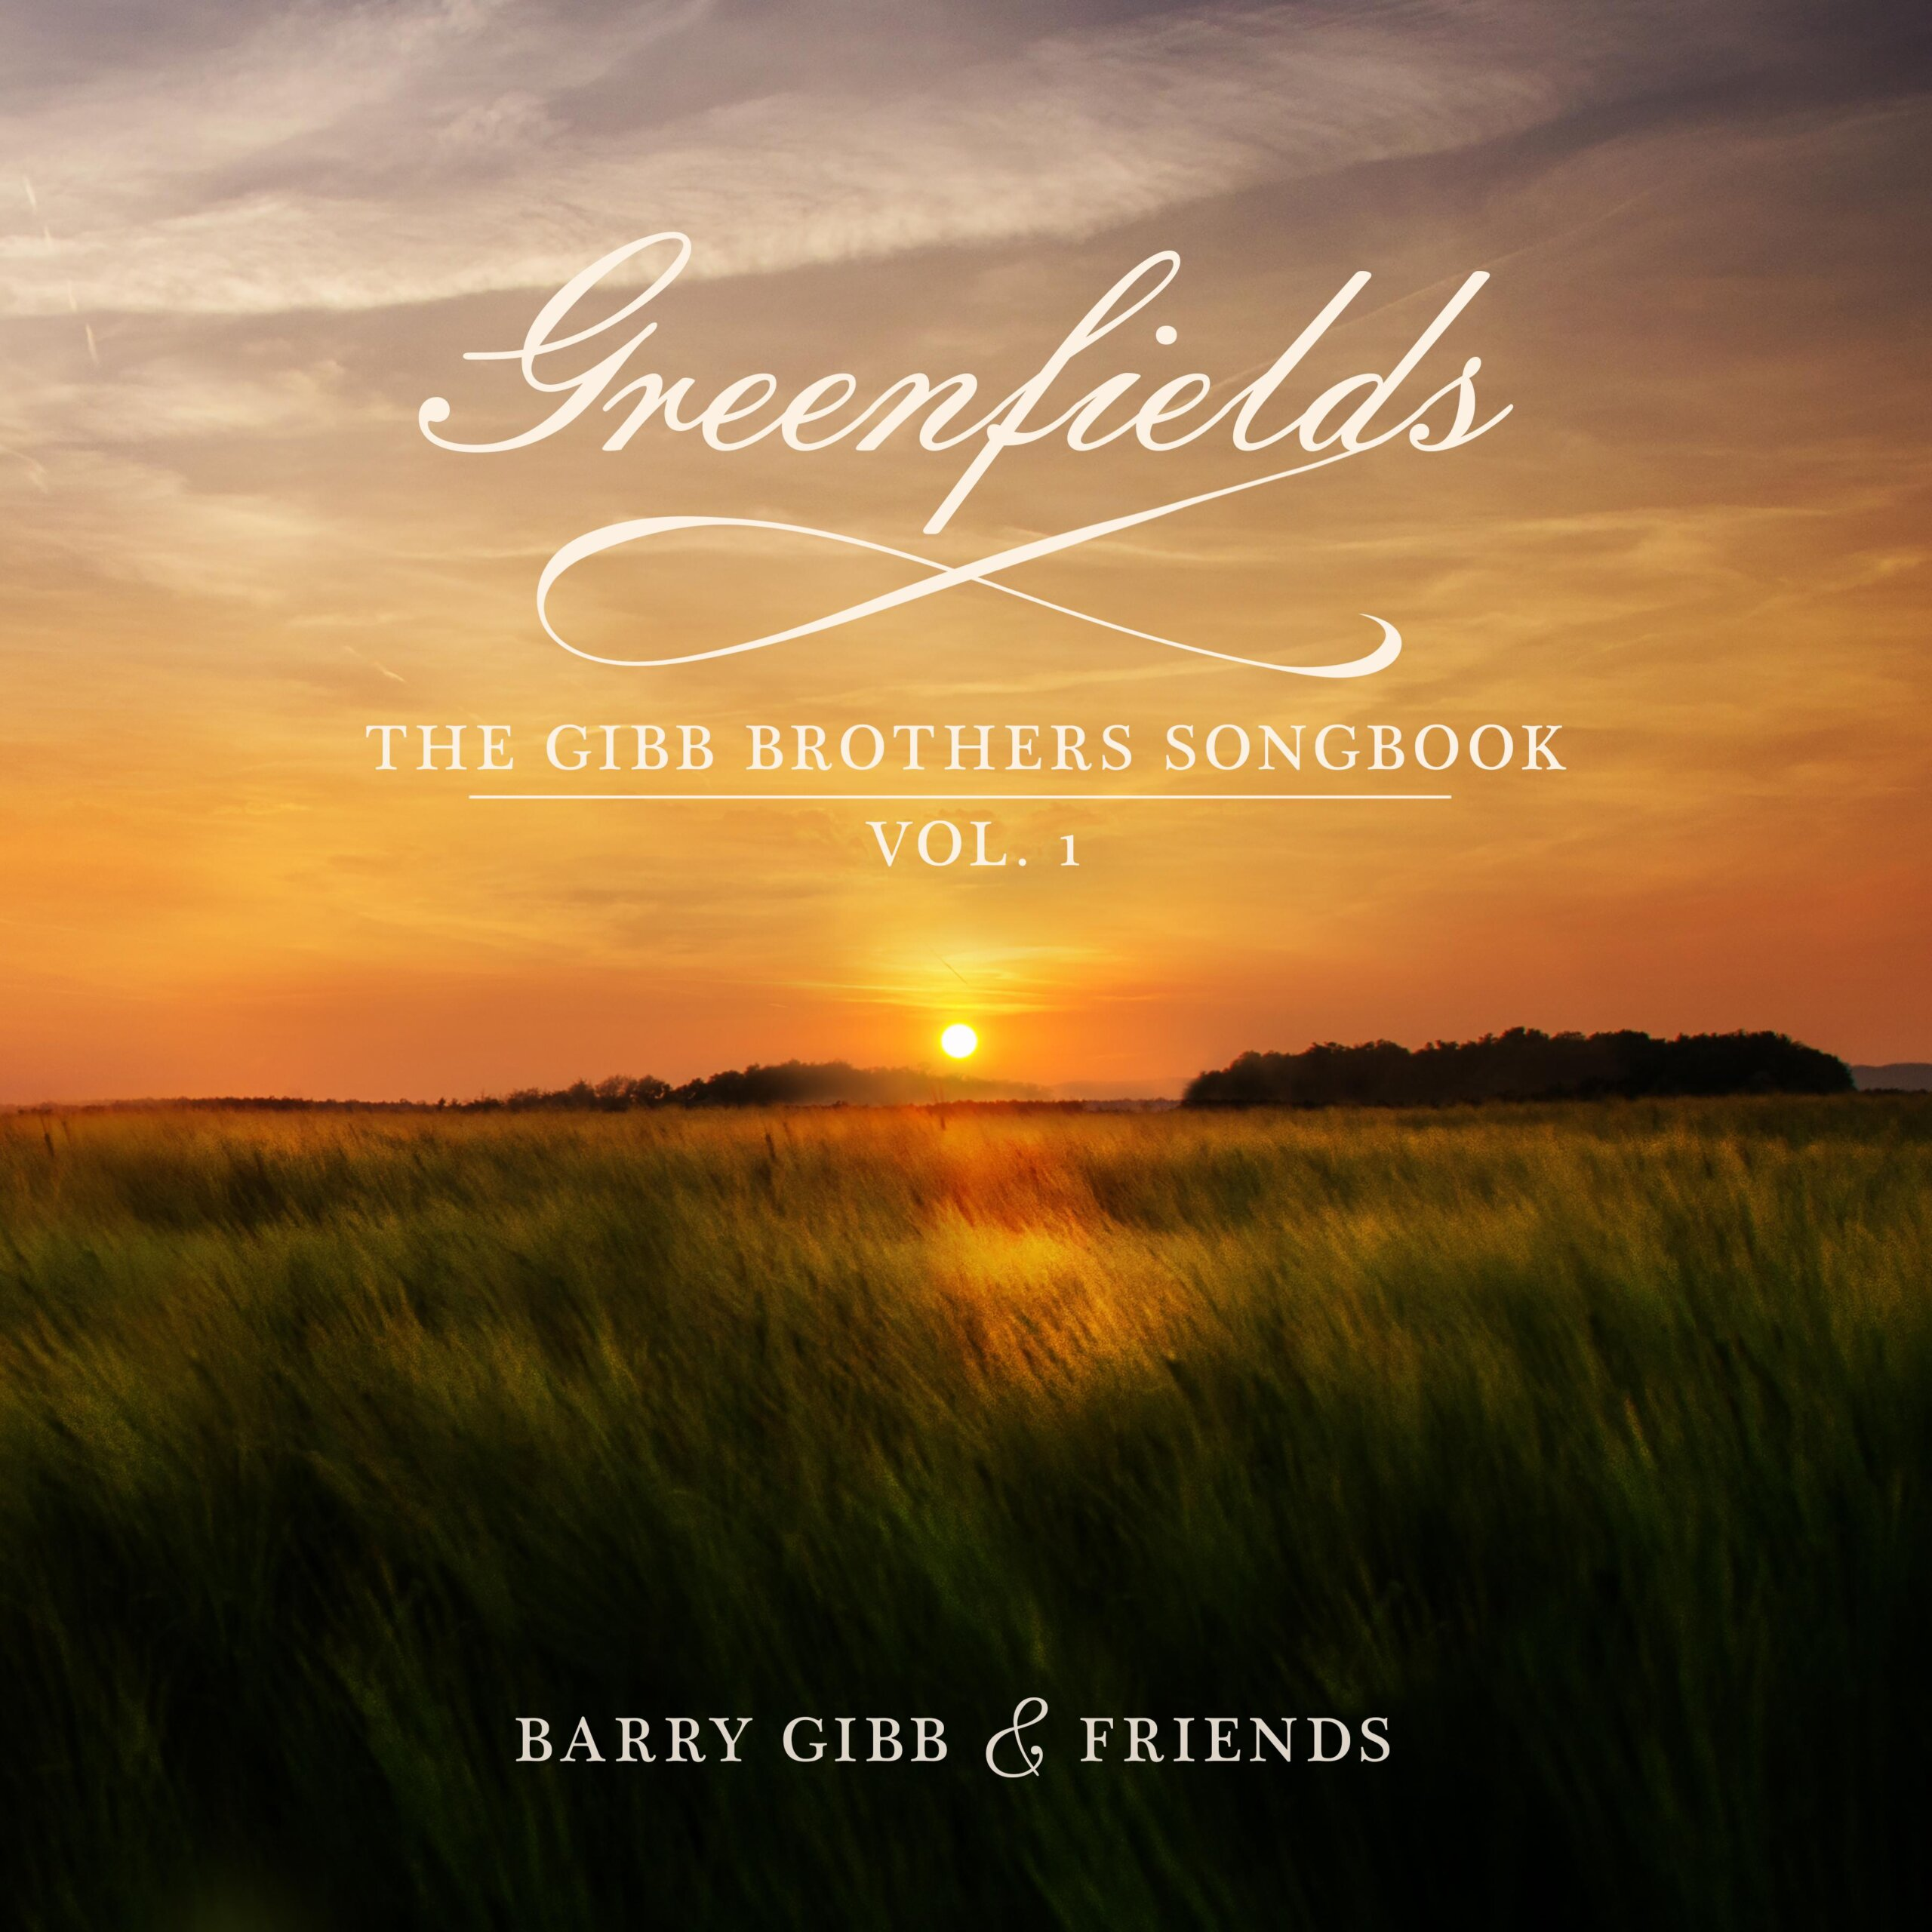 Greenfields – The Gibb Brothers´ Songbook, Vol. 1 von Barry Gibb & Friends